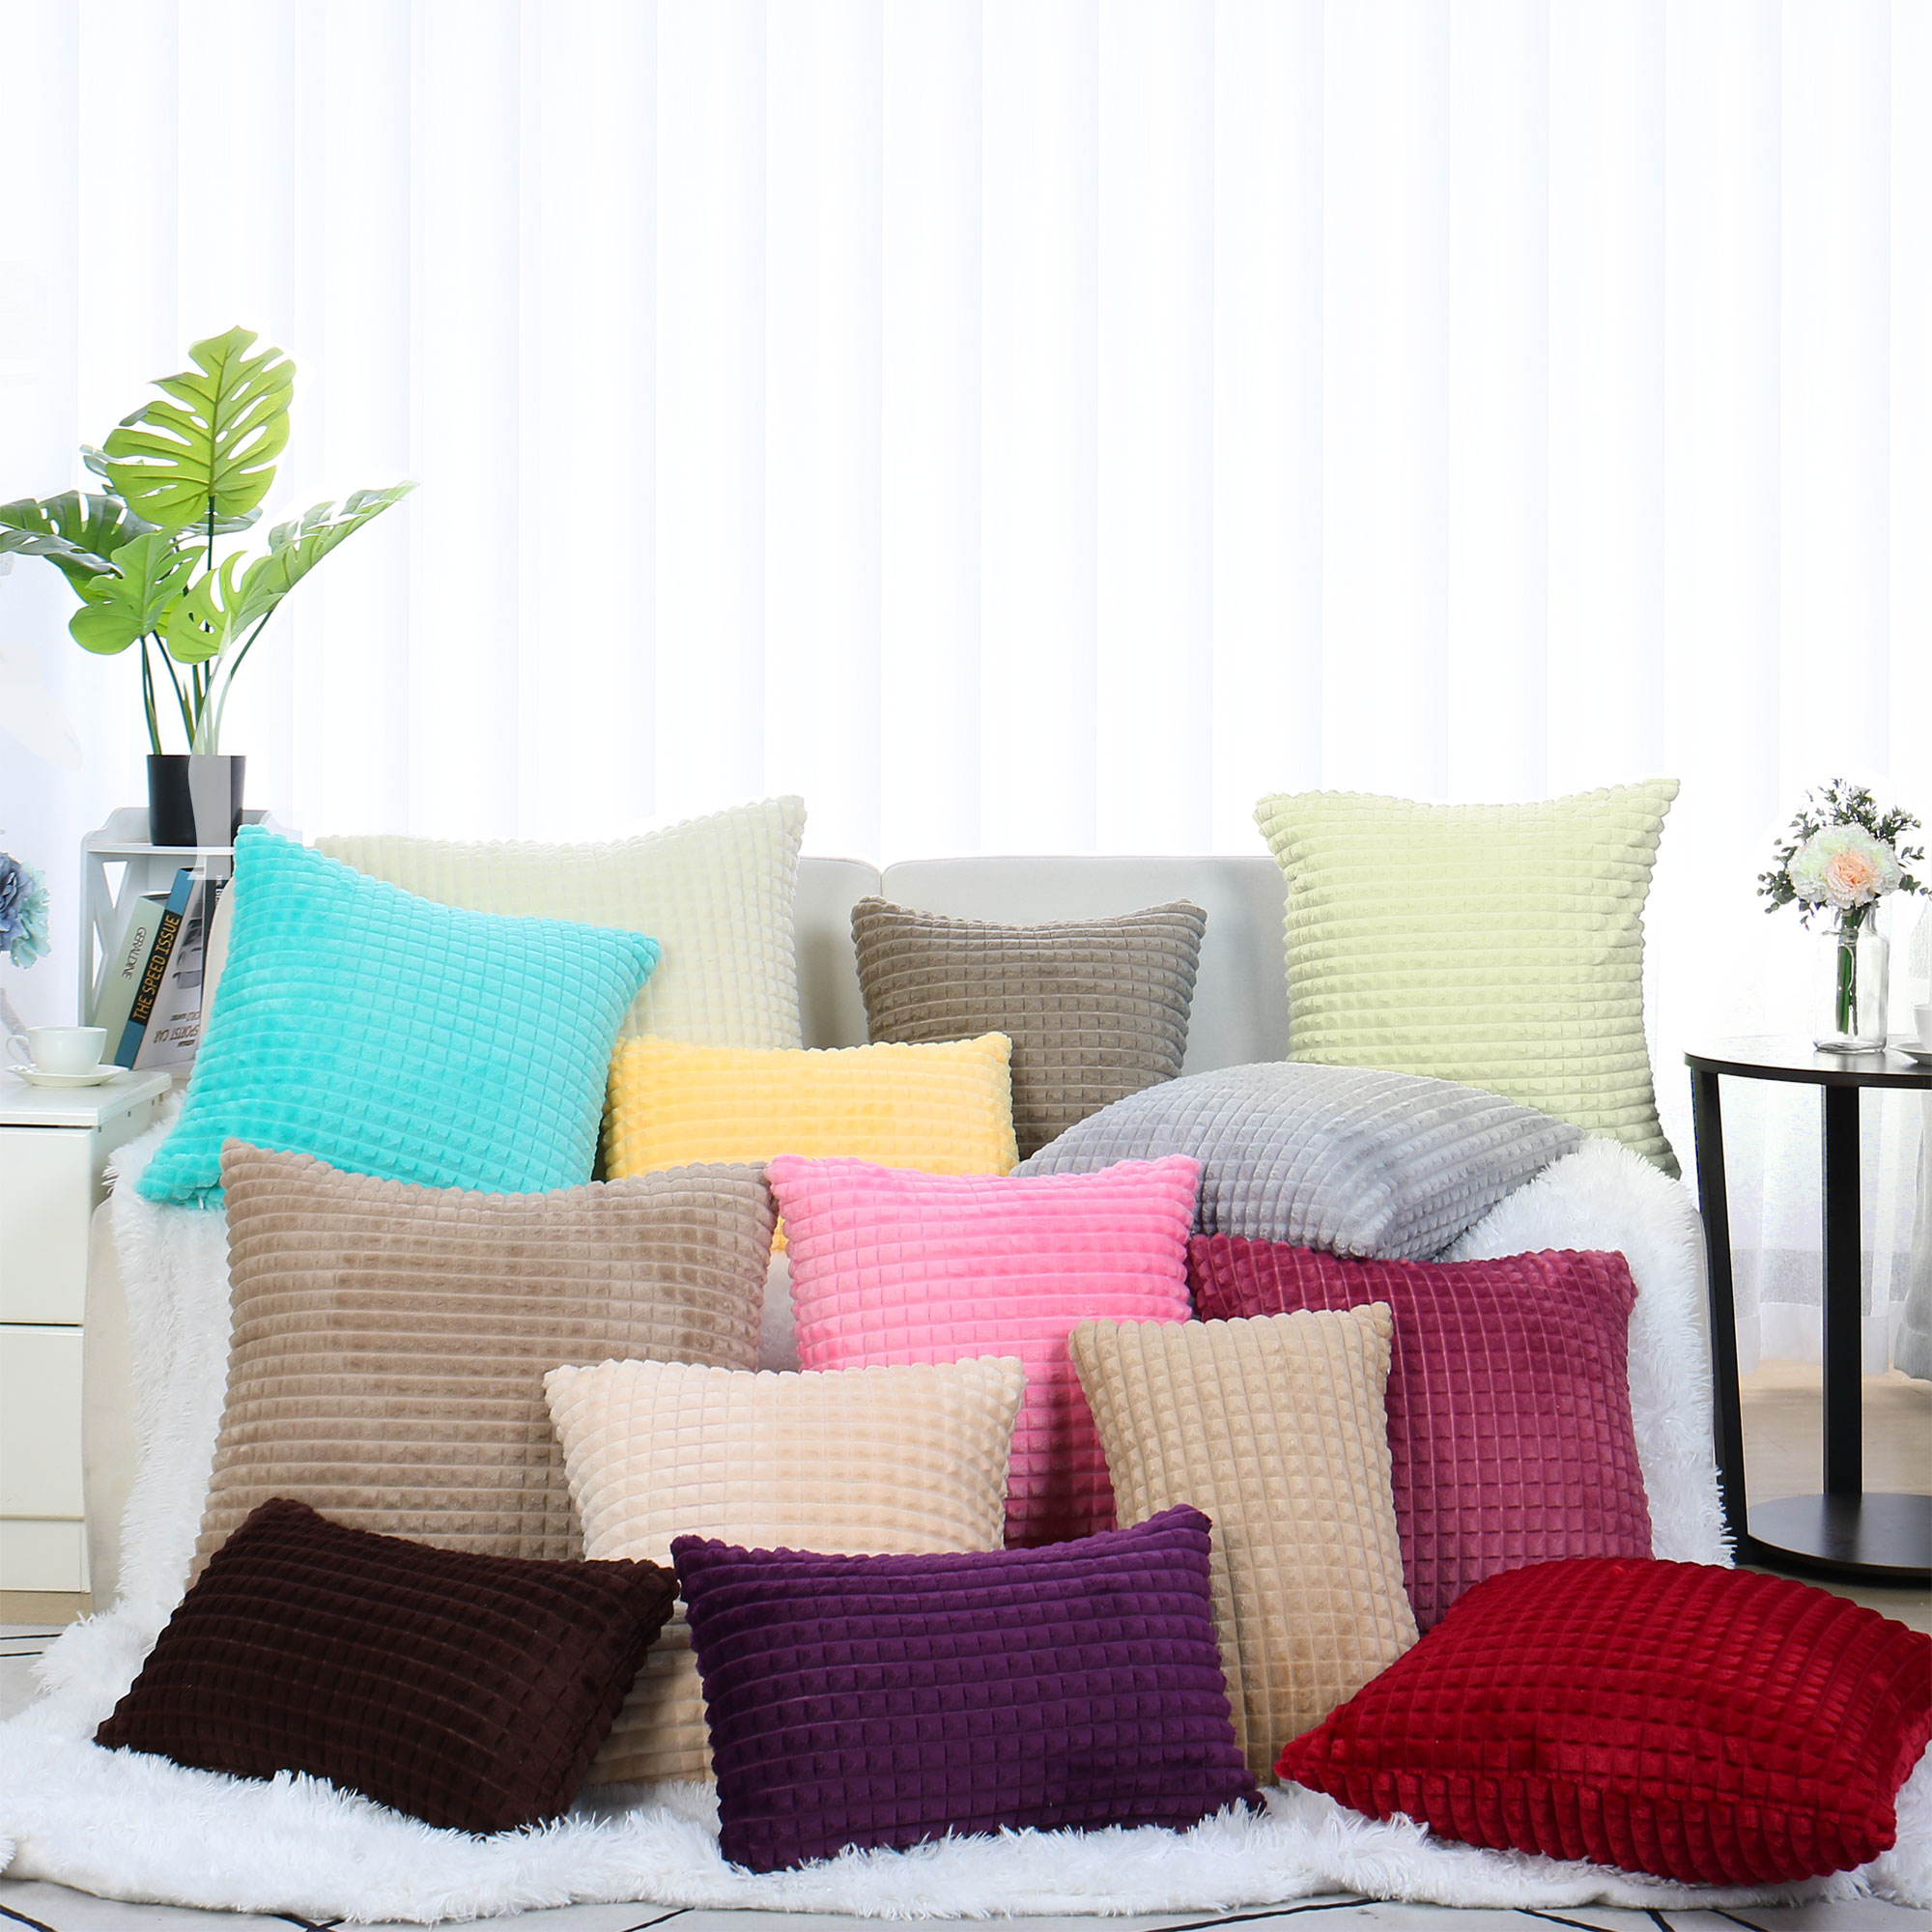 Plush Throw Pillow Cover Fluffy Cushion Cover (12 x 20 Inch, Light Yellow)